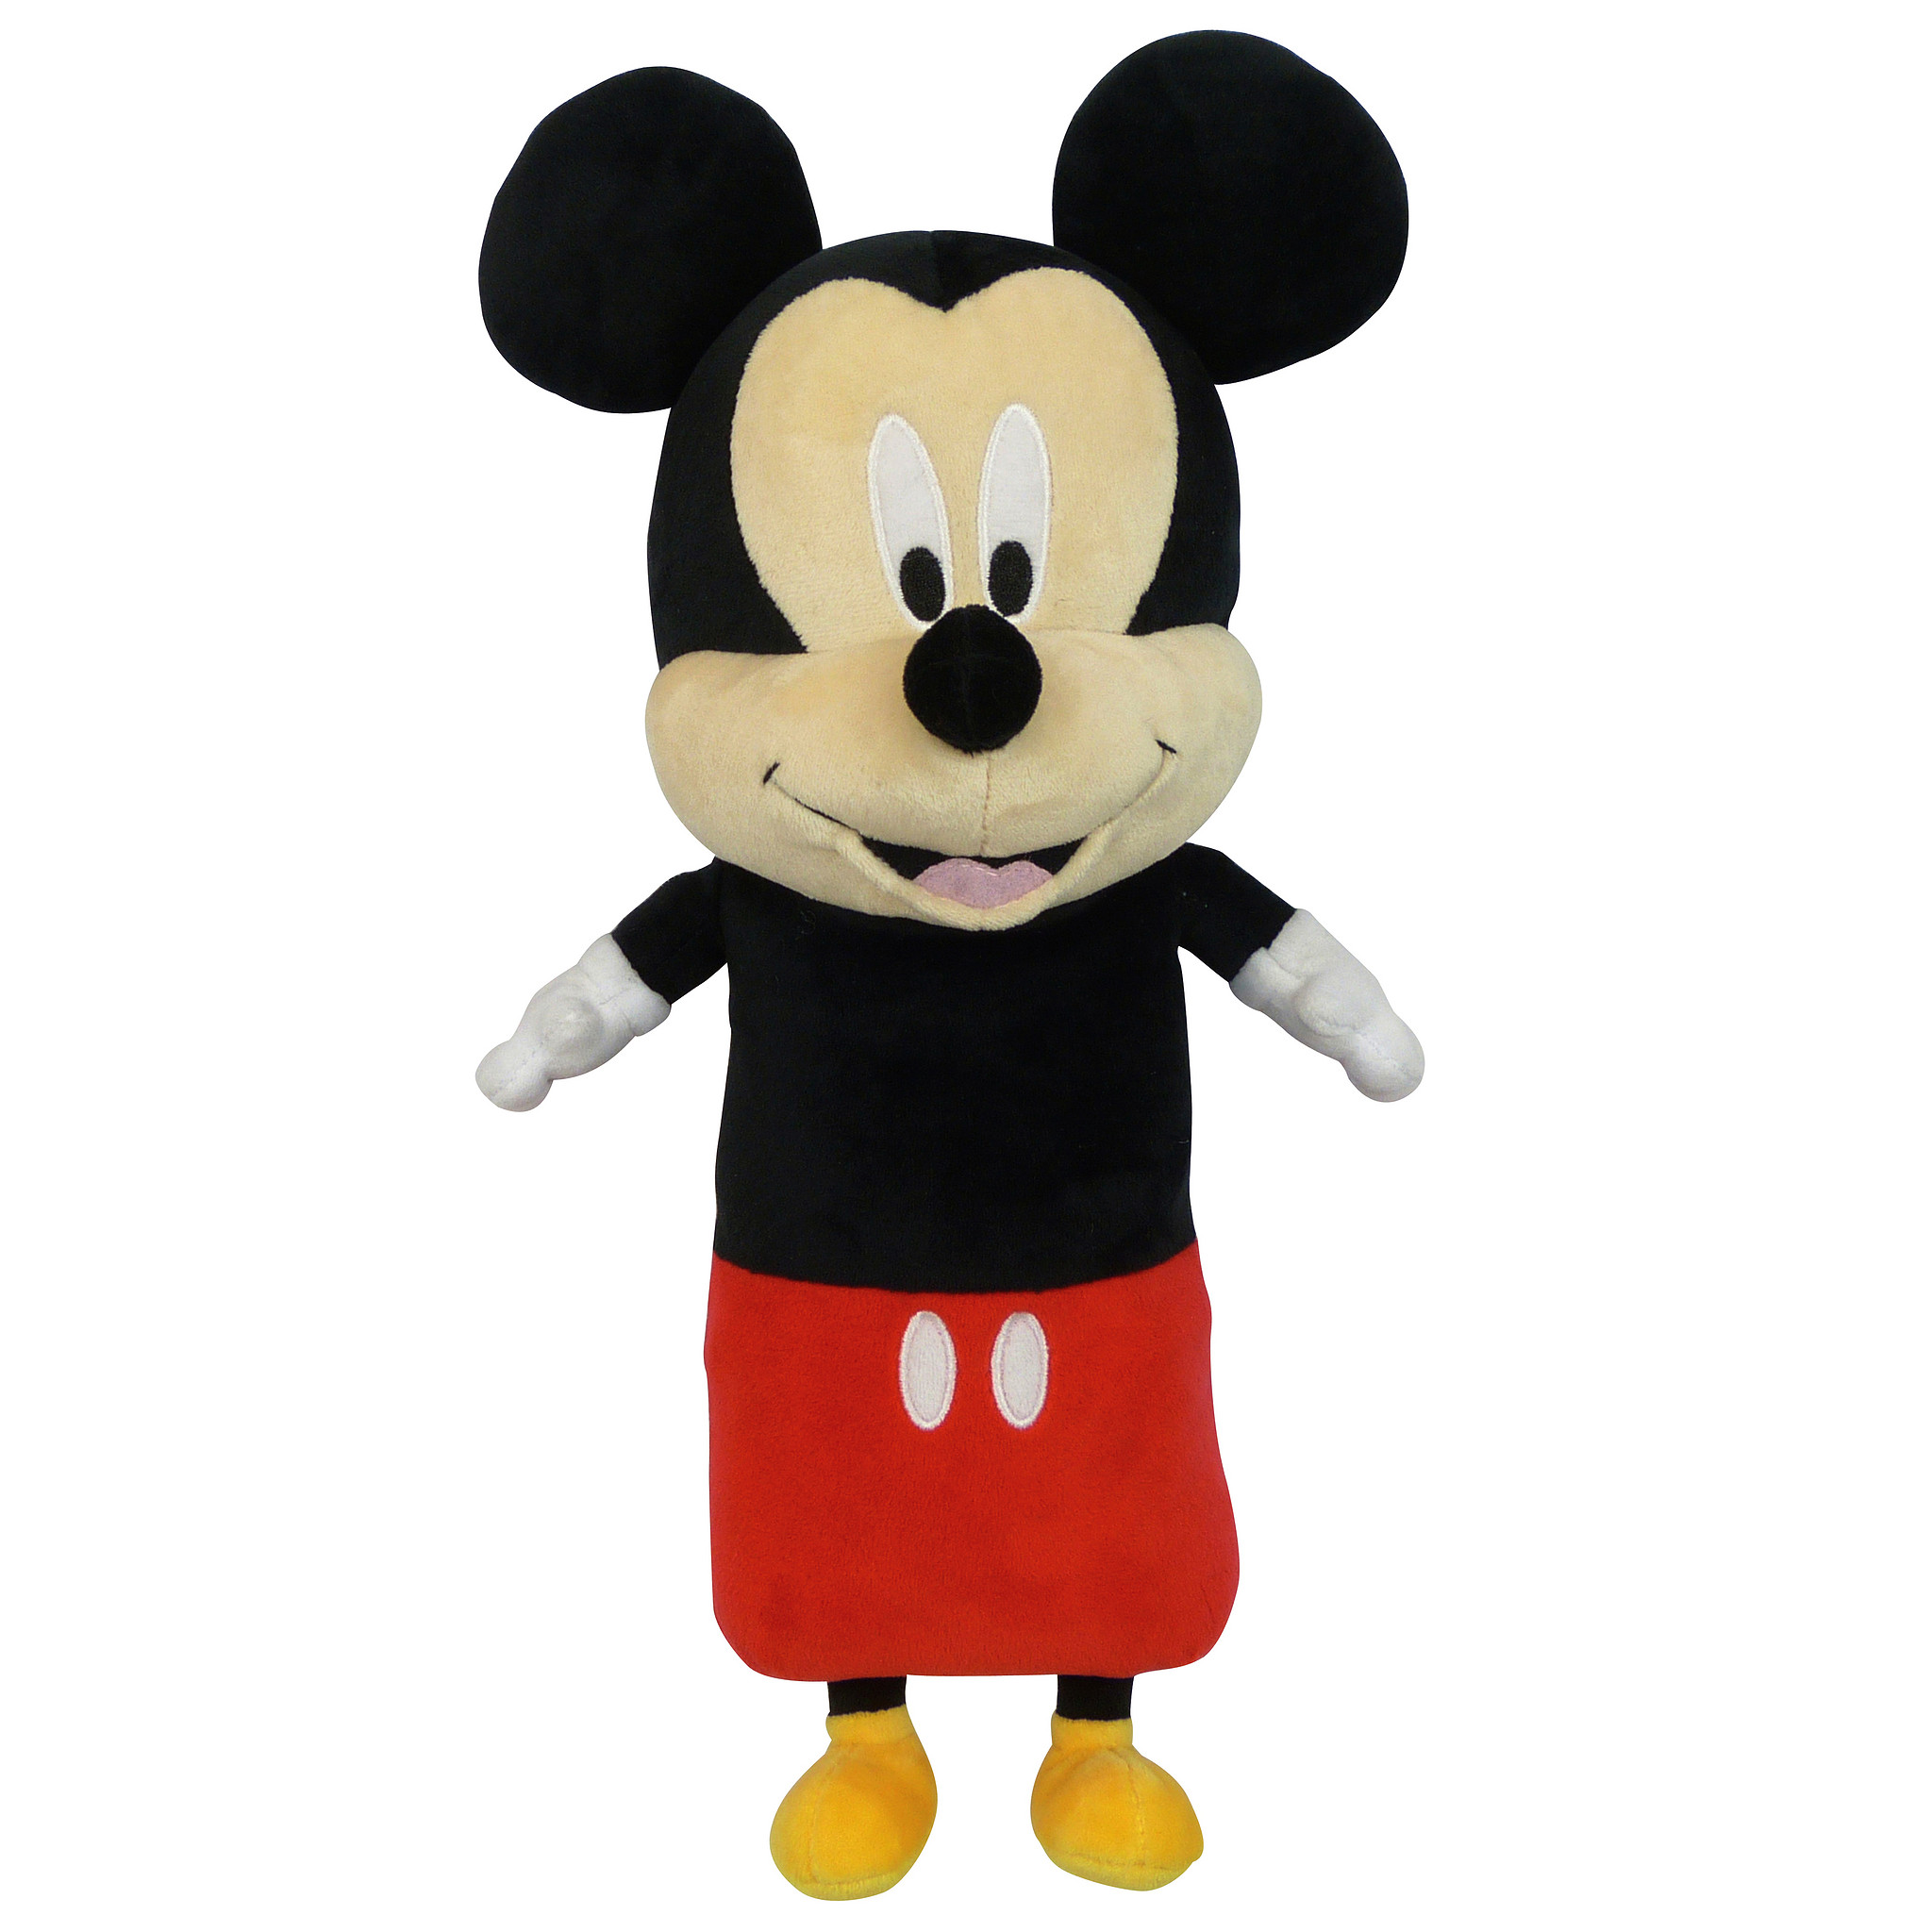 Disney 3D Gordelkussen Mickey